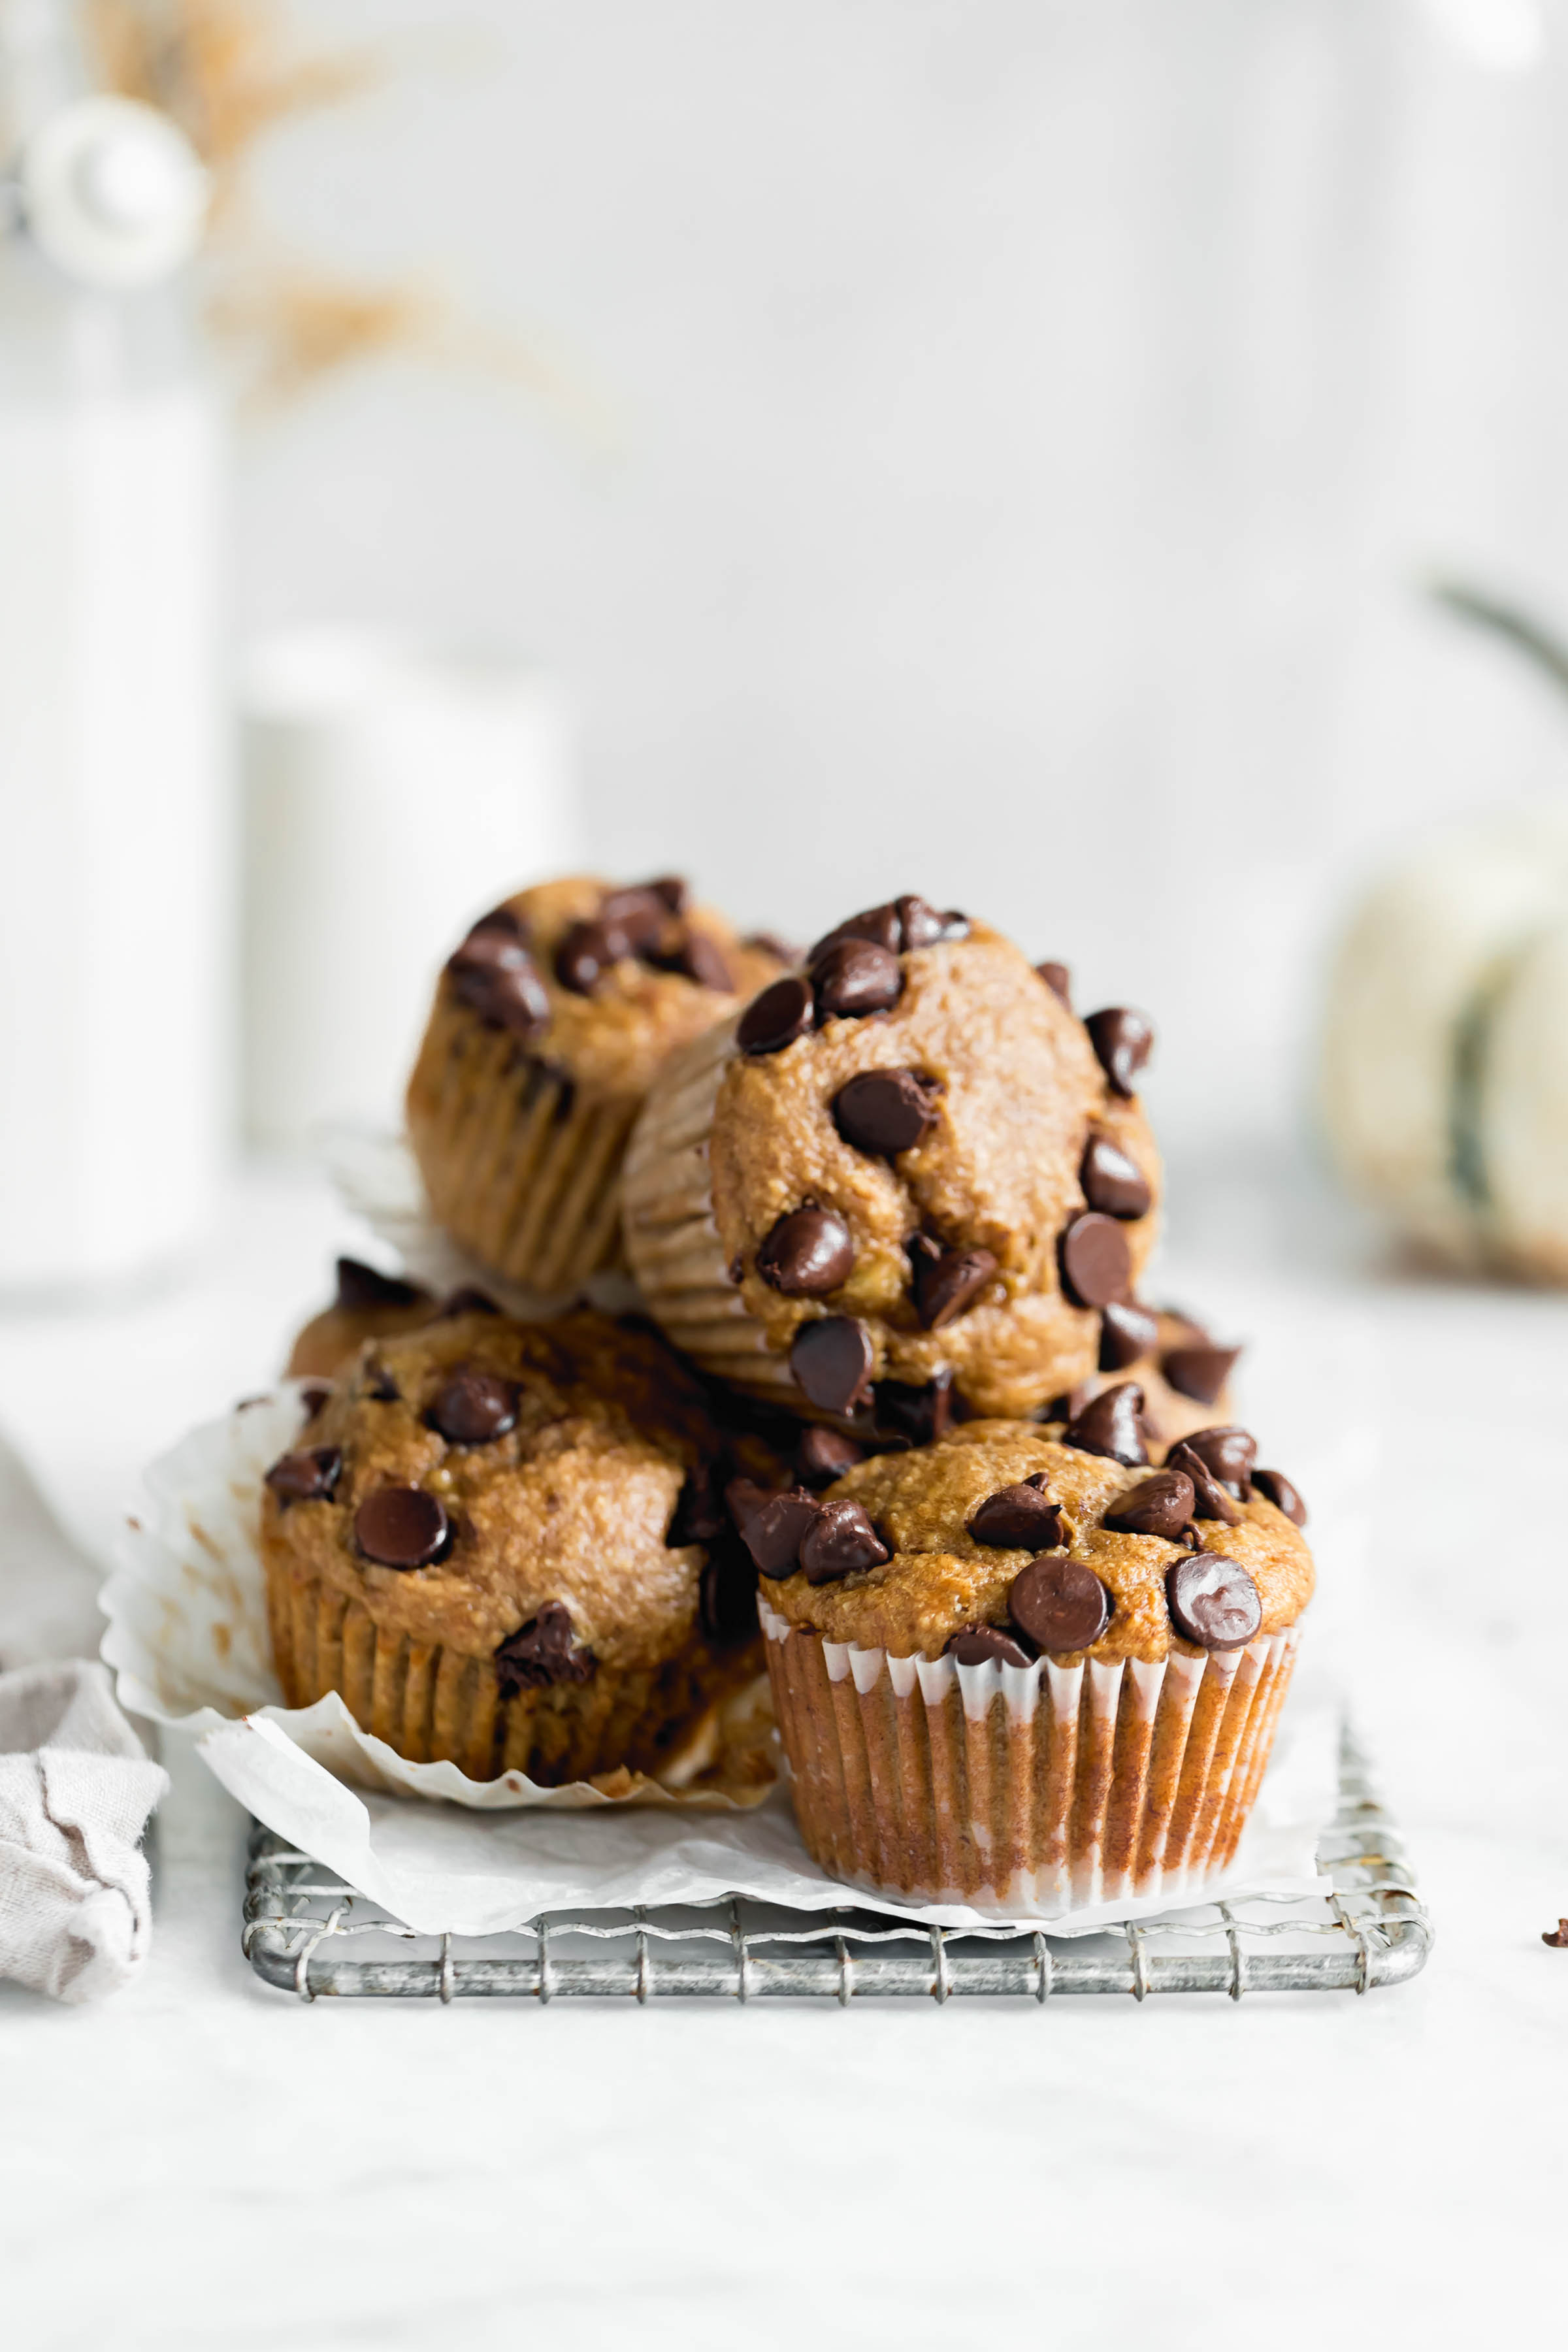 stack of healthy peanut butter banana muffins with chocolate chips